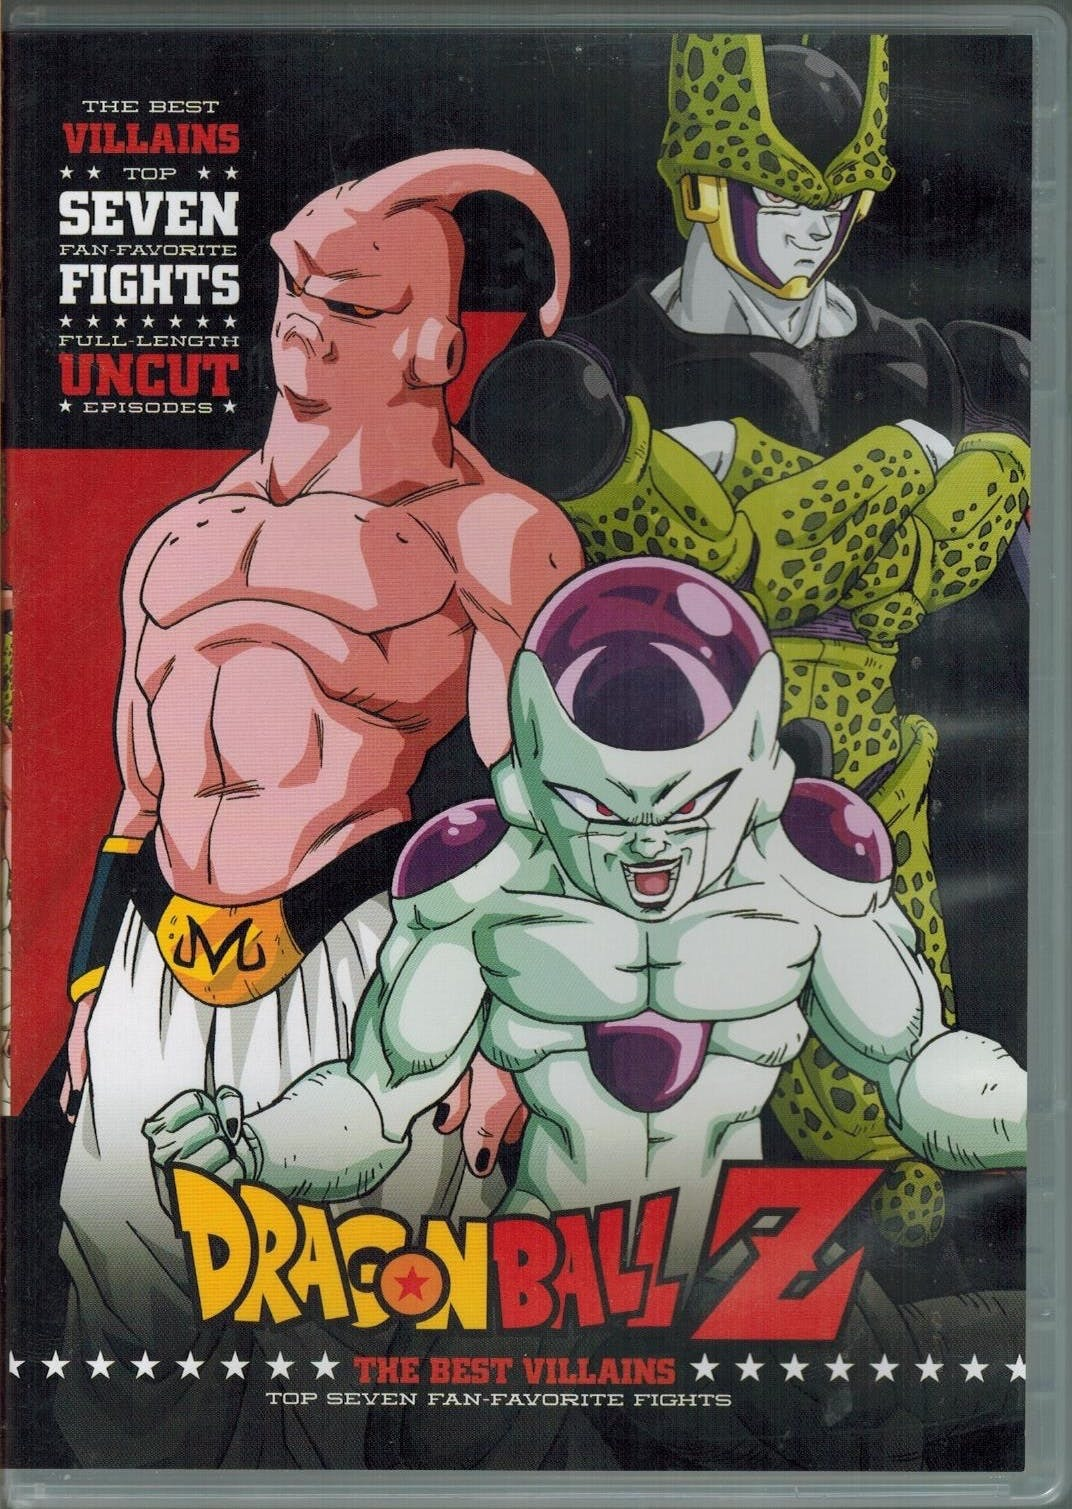 Dragon Ball Z The Best Villians Top Seven Fan-Favorite Fights DBZ